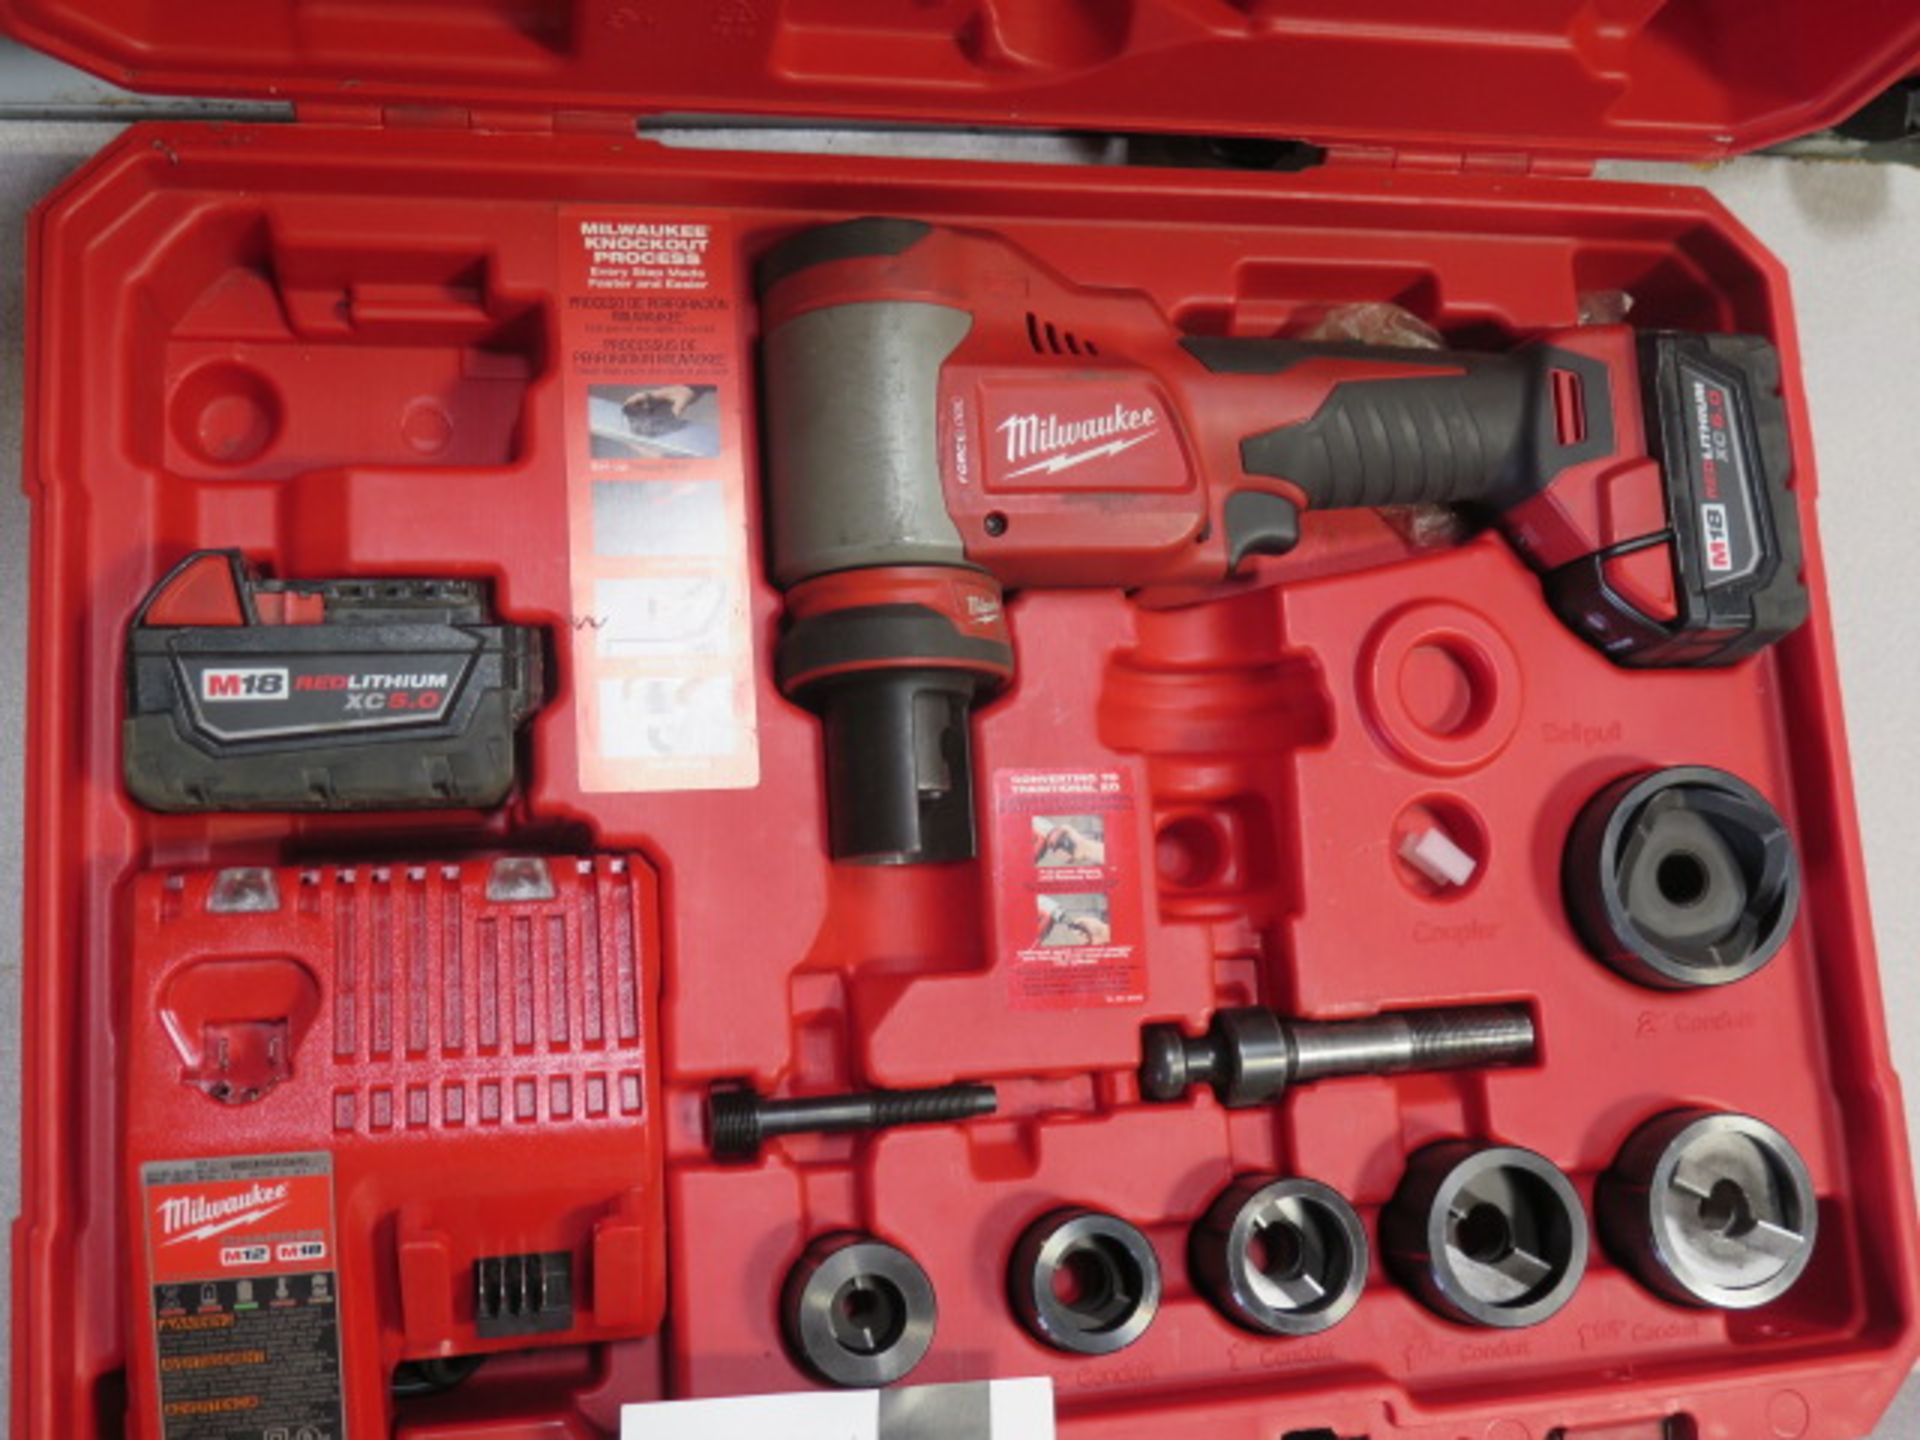 Milwaukee 18 Volt 10-Ton Knockout Tool Punch Set (SOLD AS-IS - NO WARRANTY) - Image 2 of 6